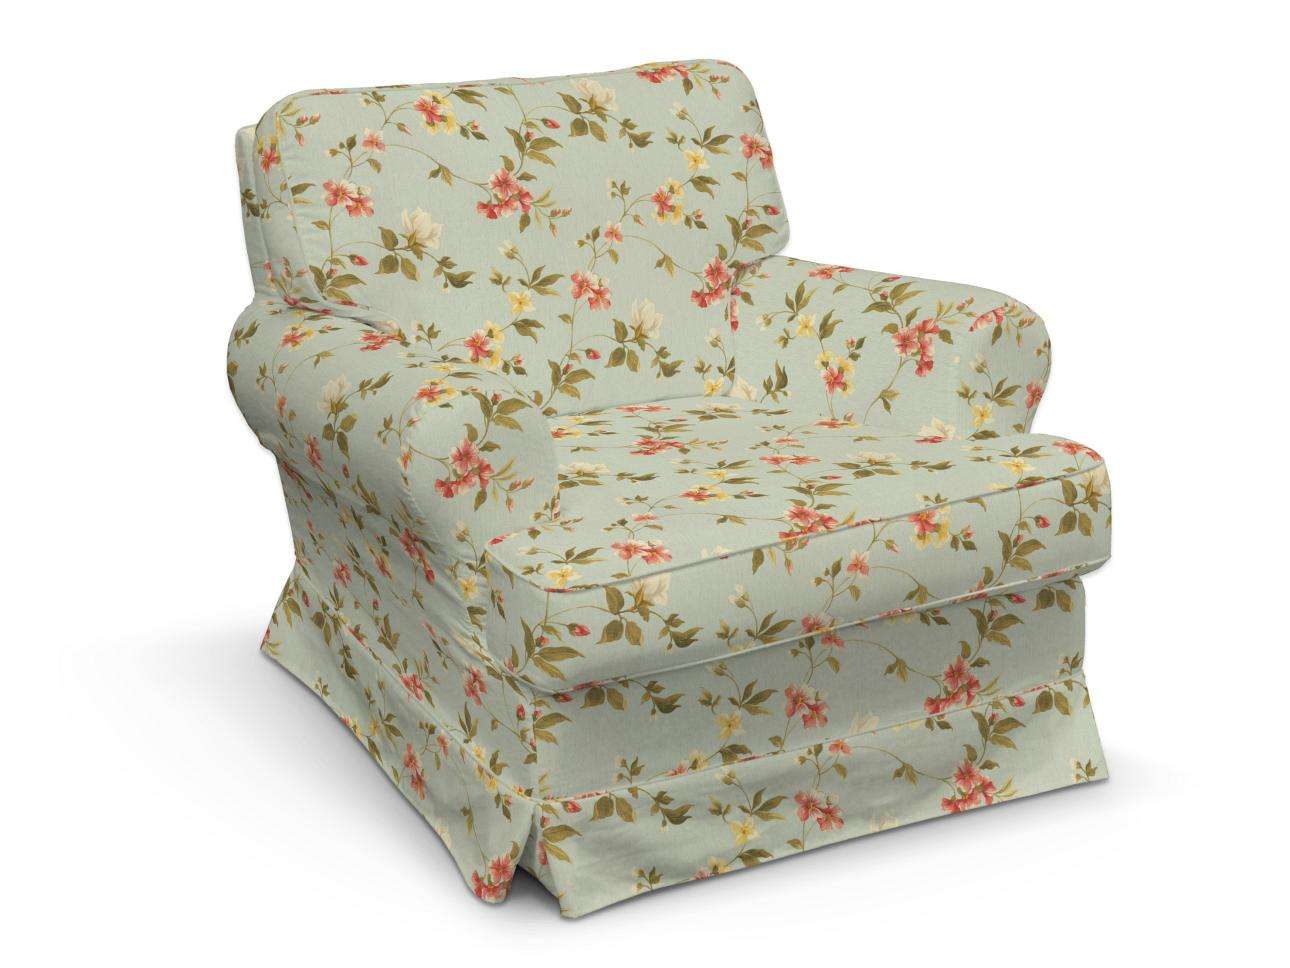 Barkaby armchair cover in collection Londres, fabric: 124-65